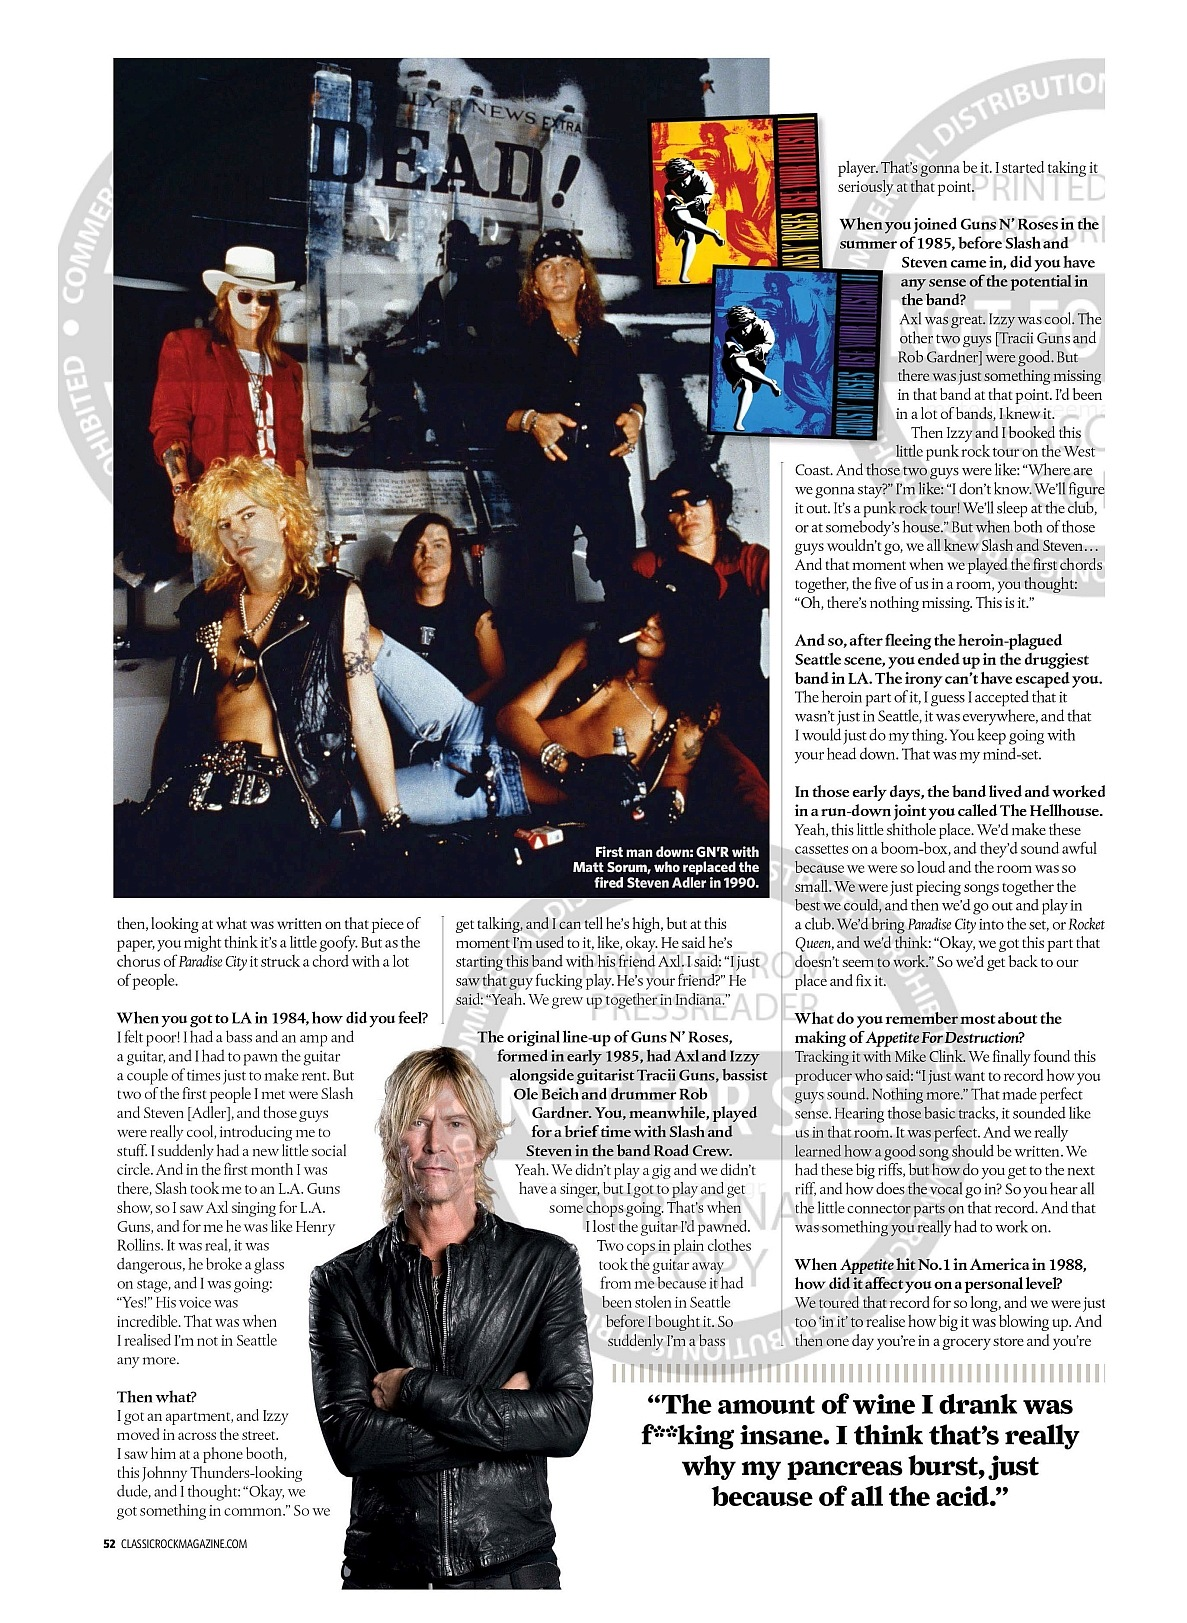 2019.05.DD - Classic Rock - Duff McKagan: We wanted Izzy to be part of Guns N' Roses reunion 2019_043